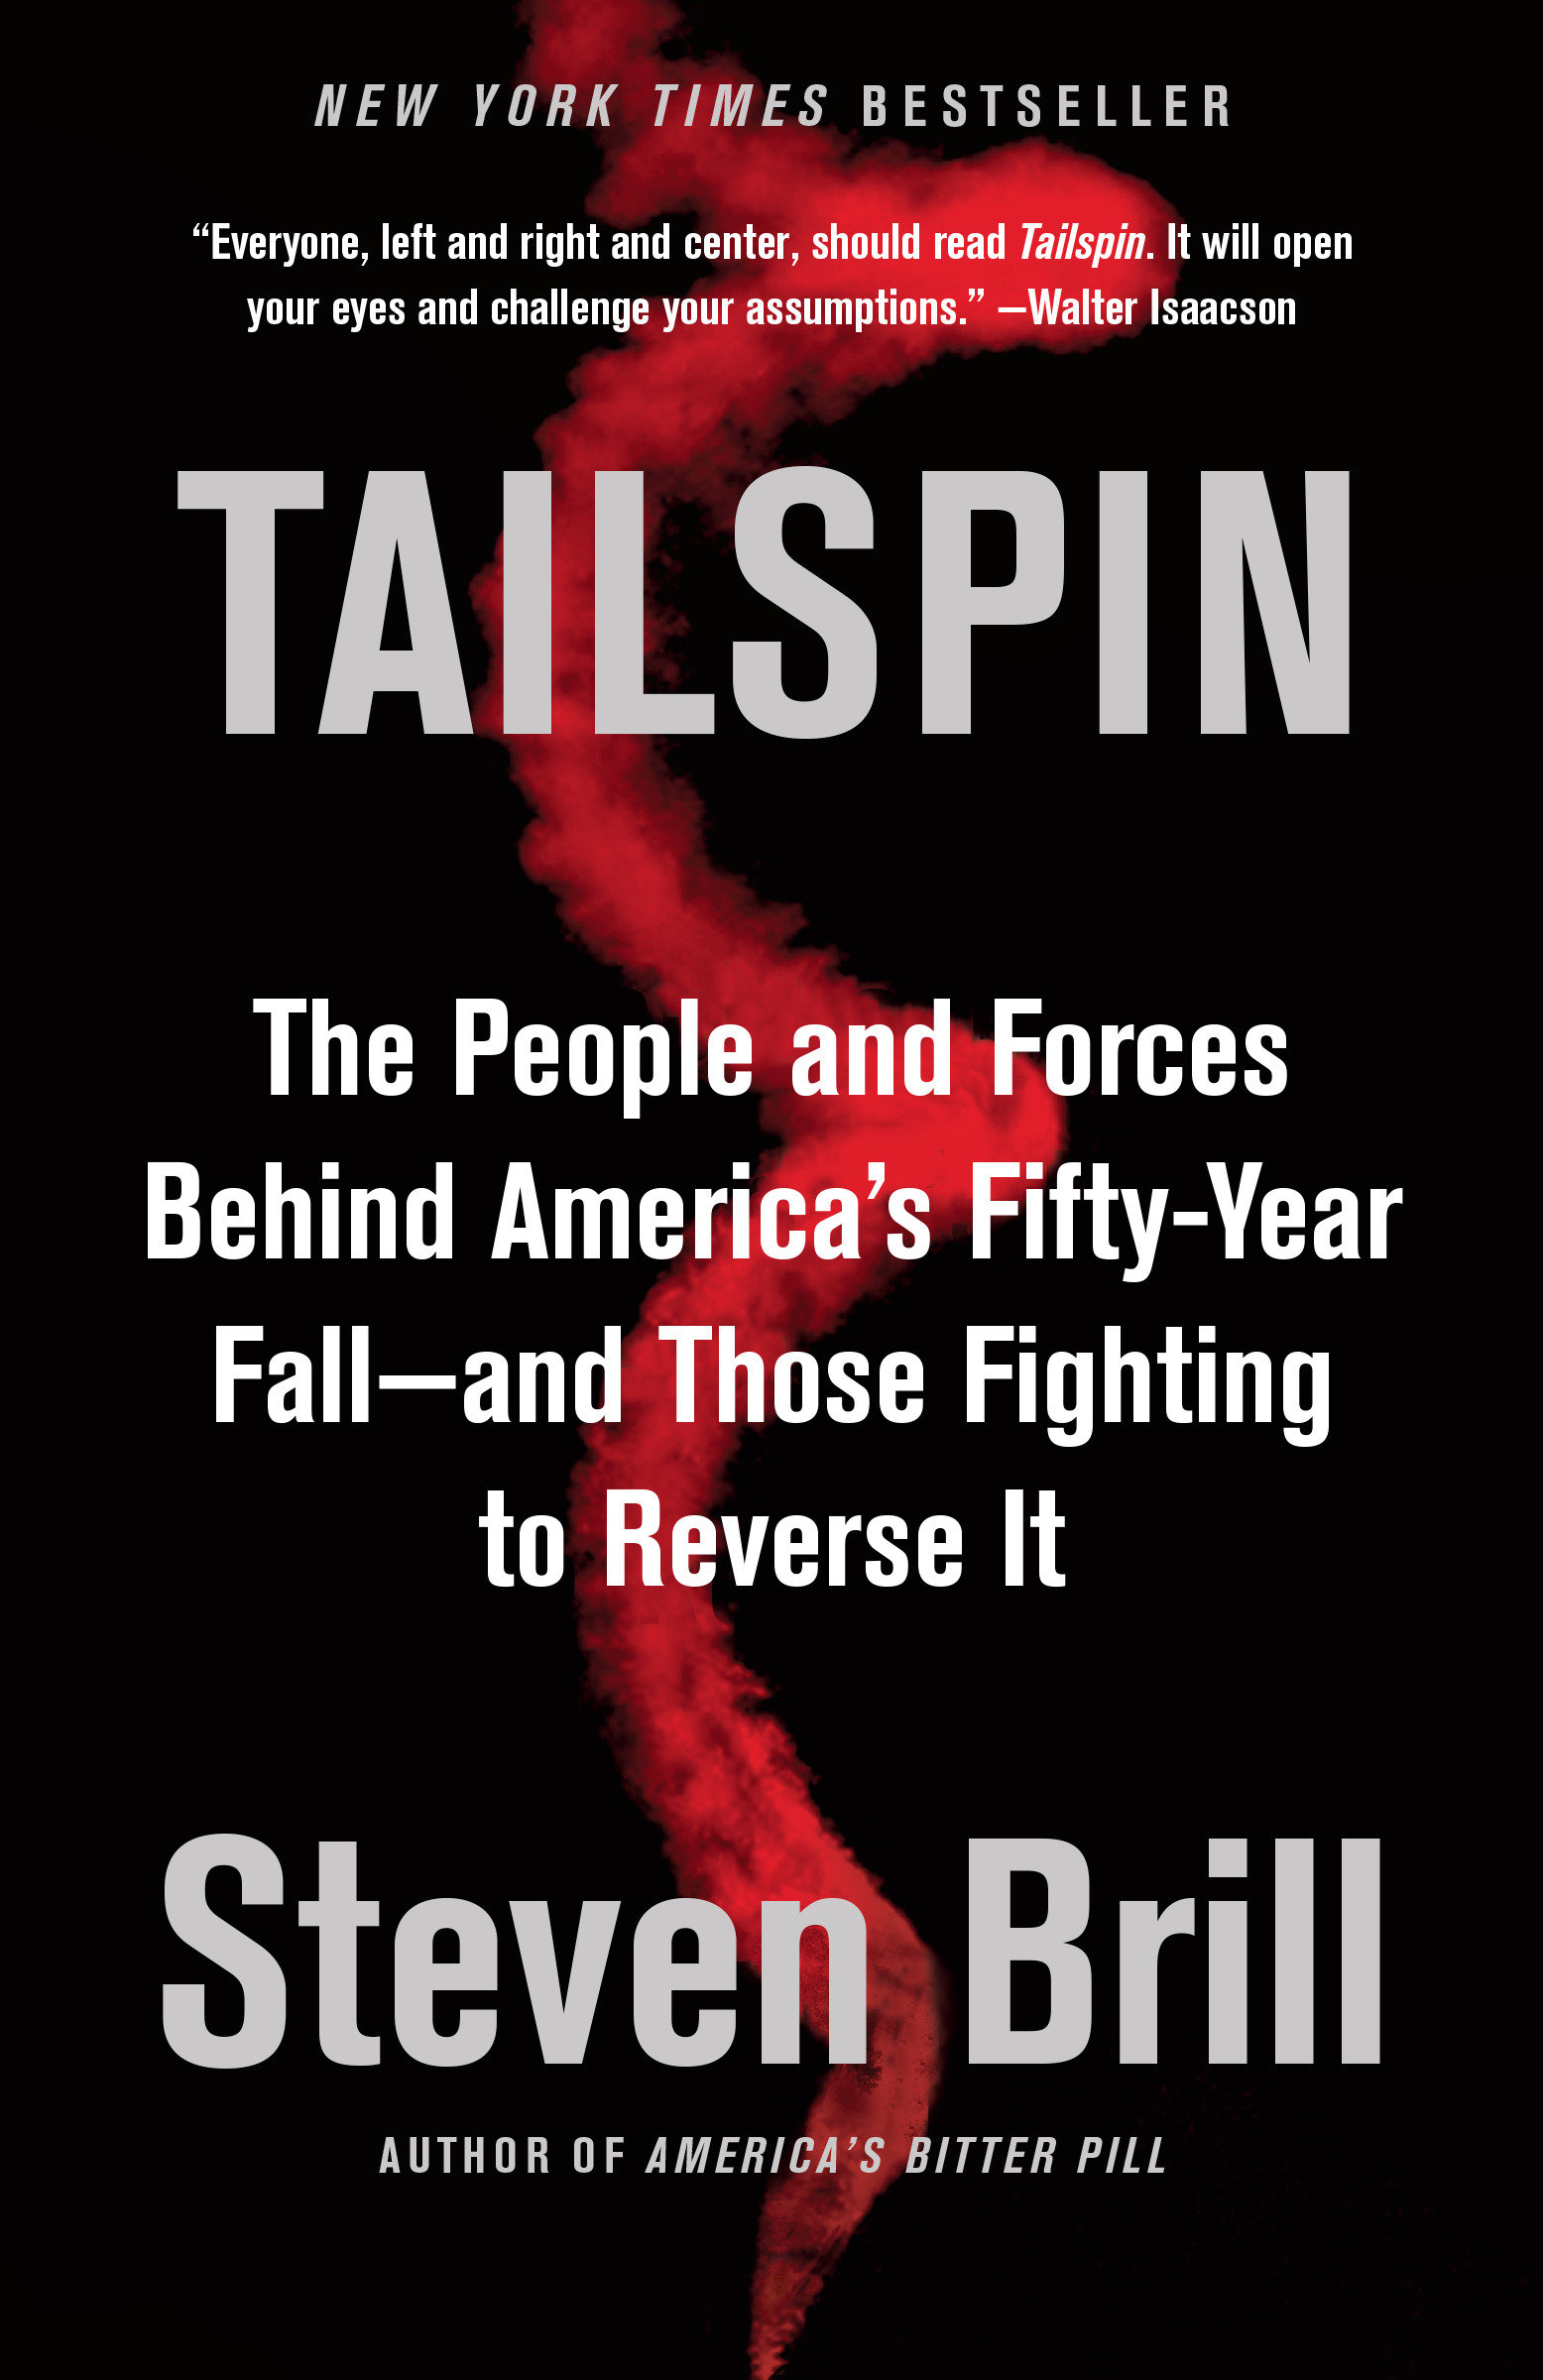 Tailspin The People and Forces Behind America's Fifty-Year Fall--and Those Fighting to Reverse It